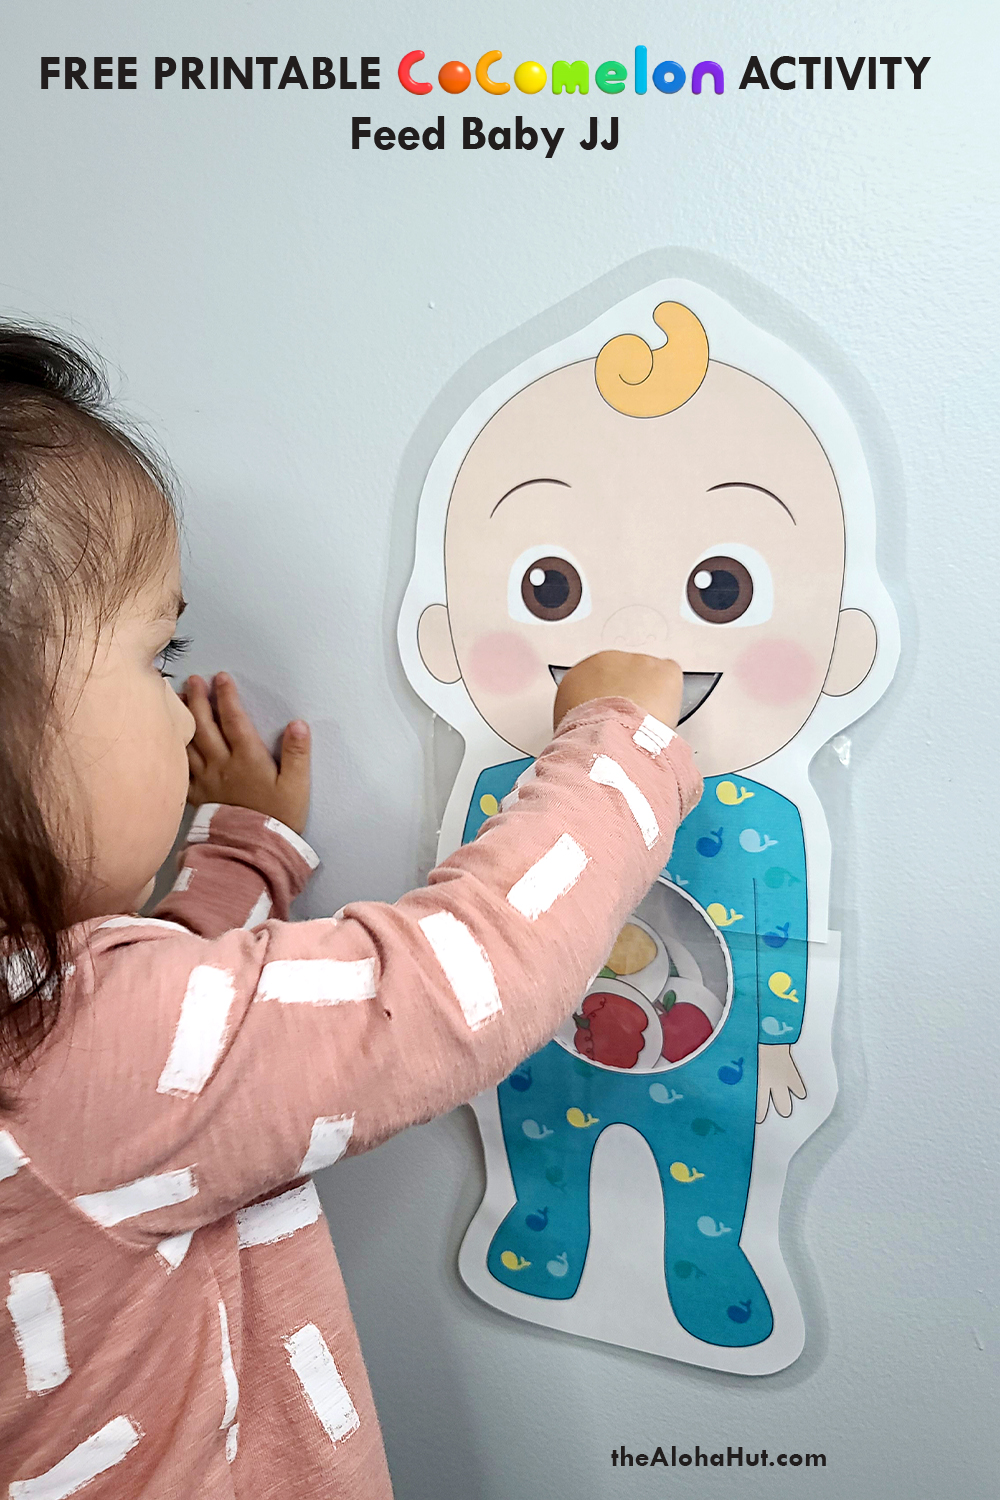 cocomelon feed baby JJ activity free printable 7 by the Aloha Hut